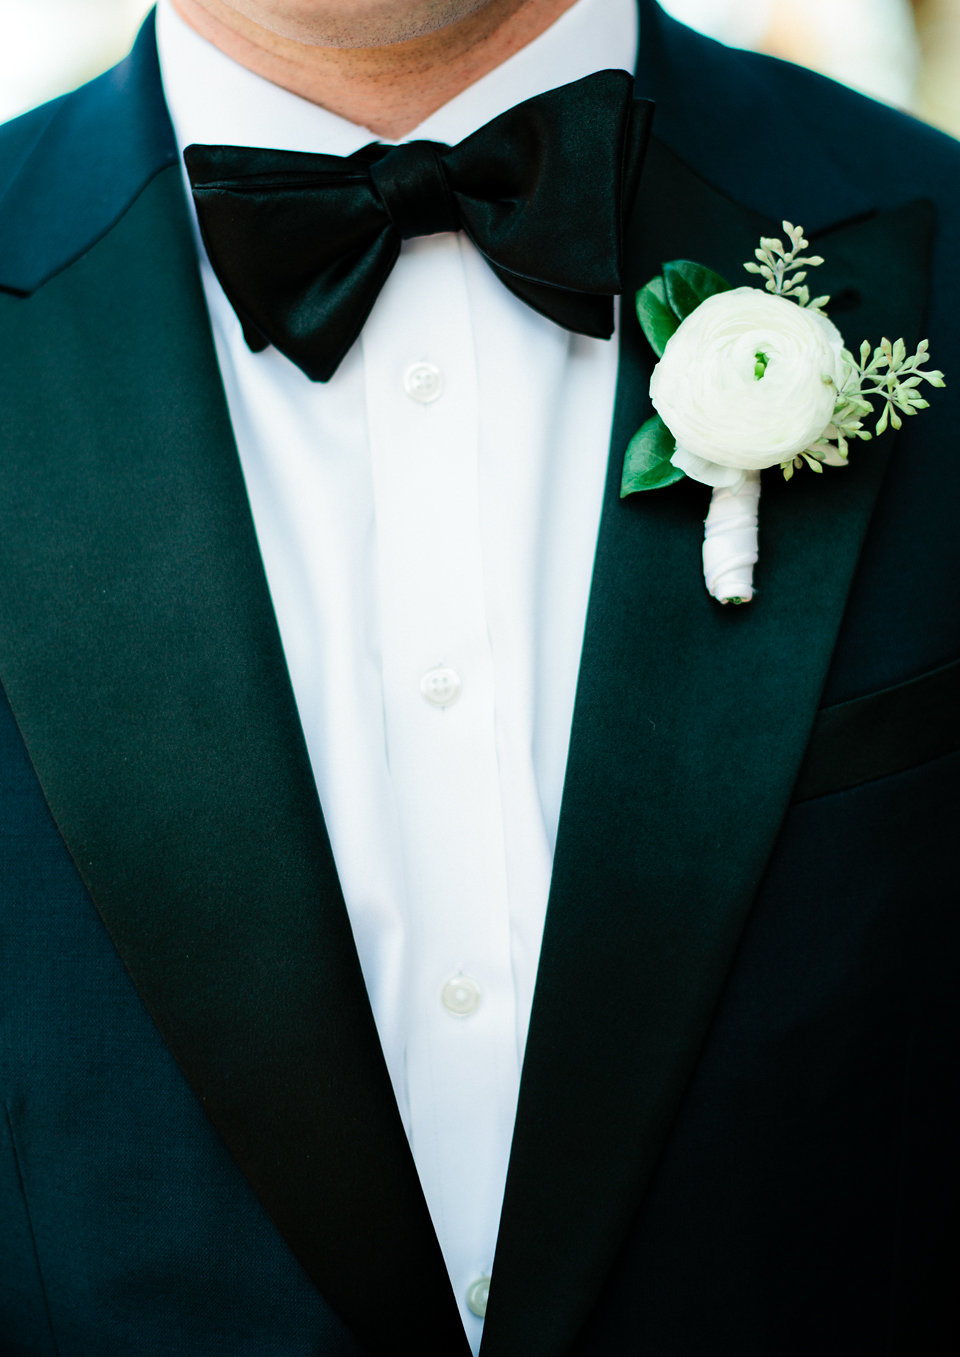 Ivory Ranunculus Boutonniere with Black Tux  Blush Wedding at TPC Sawgrass Wedding Ponte Vedra Beach  Jacksonville Wedding Planner Blue Ribbon Weddings  Jacksonville Wedding Photographer Debra Eby Photography  Wedding Ceremony & Reception at TPC Sawgrass Jacksonville